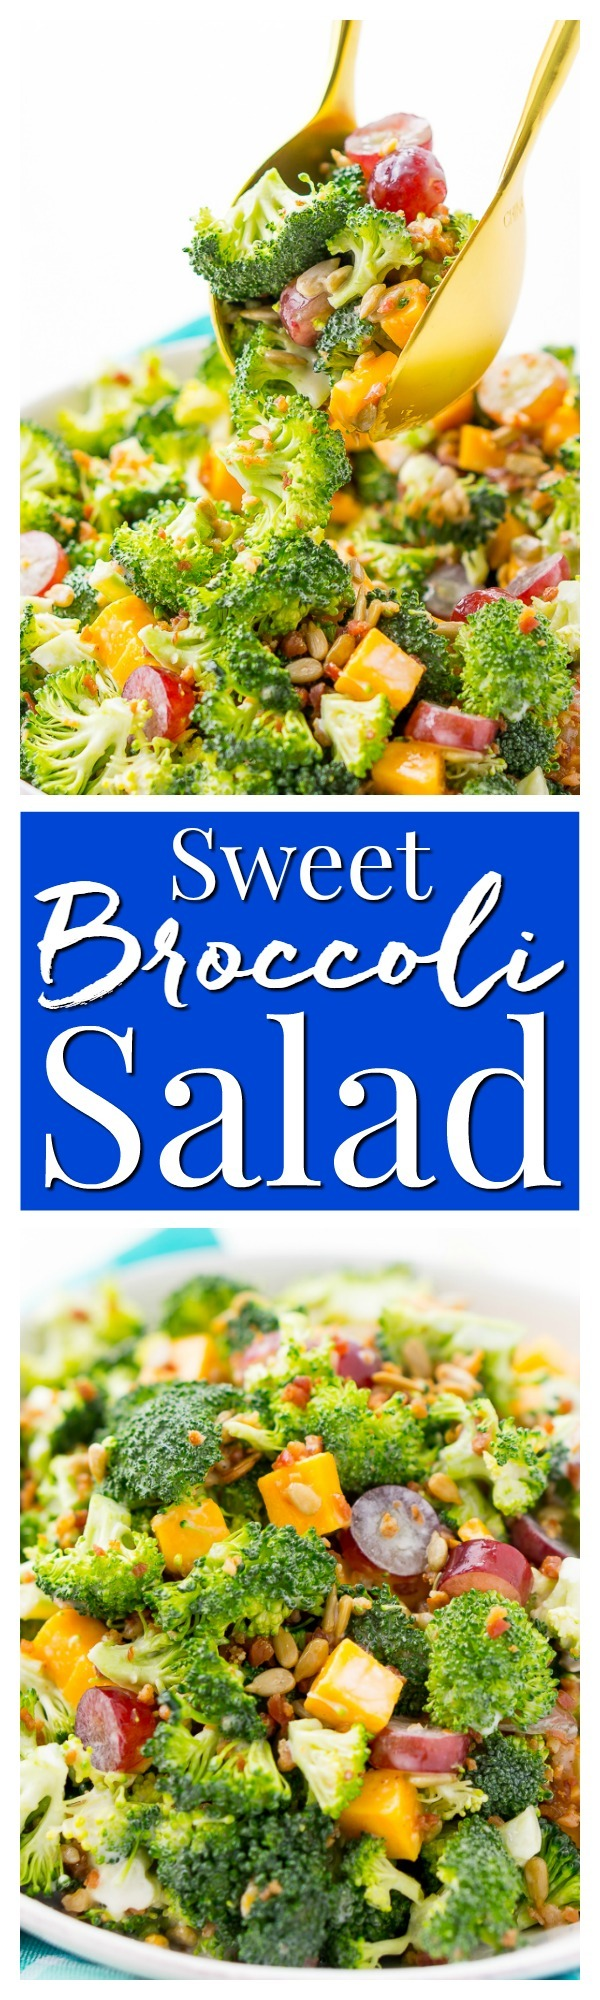 This Sweet Broccoli Salad is an easy, crunchy, and lightly sweetened side salad that's perfect for BBQs and more! Made with fresh broccoli, grapes, cheese, sunflower seeds, bacon, and a delightful dressing! Bring it to all your summer get-togethers! via @sugarandsoulco